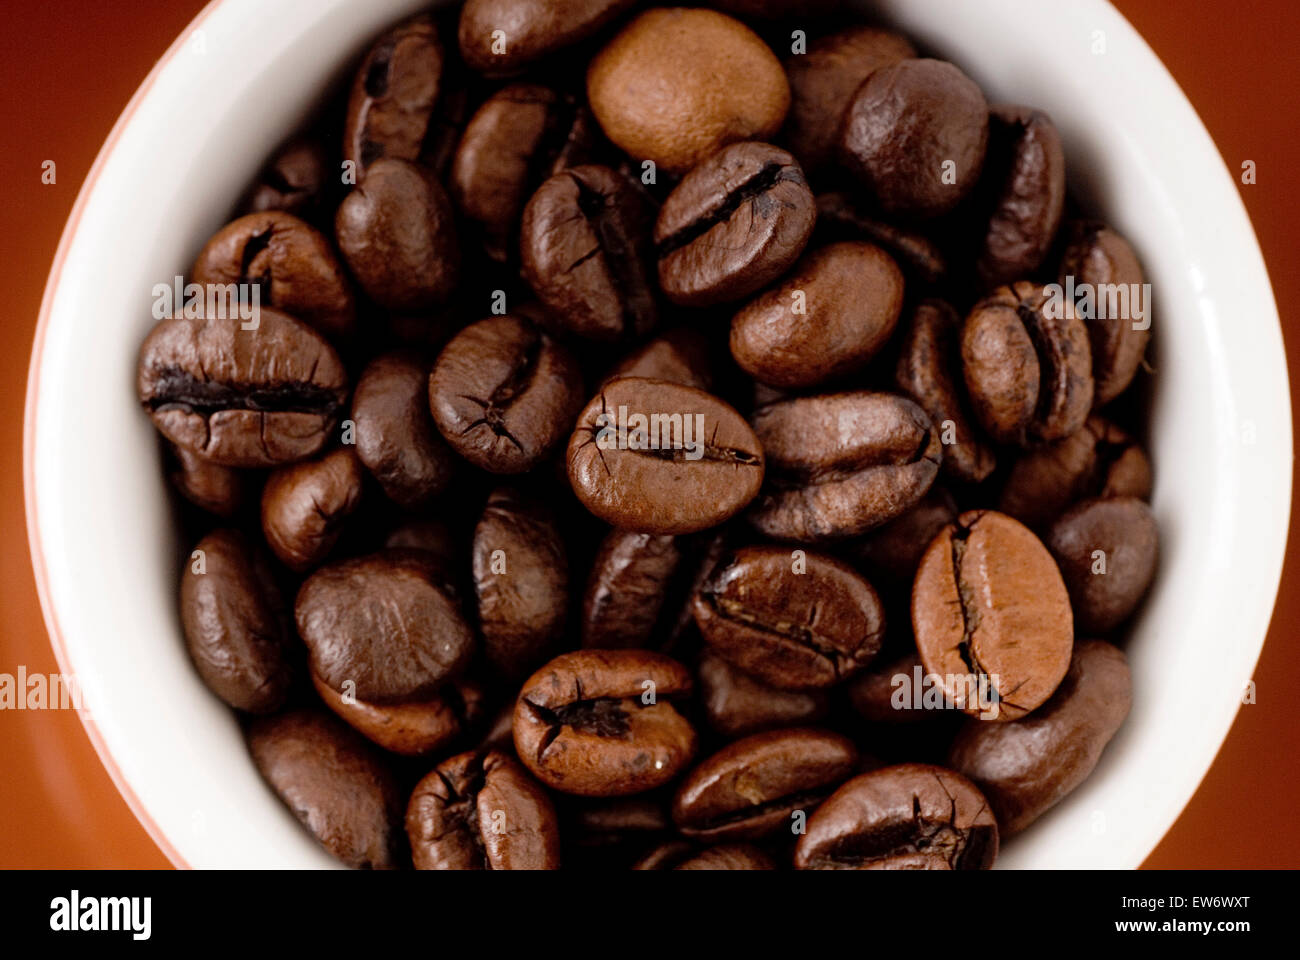 Espresso cup filled with coffee beans Stock Photo